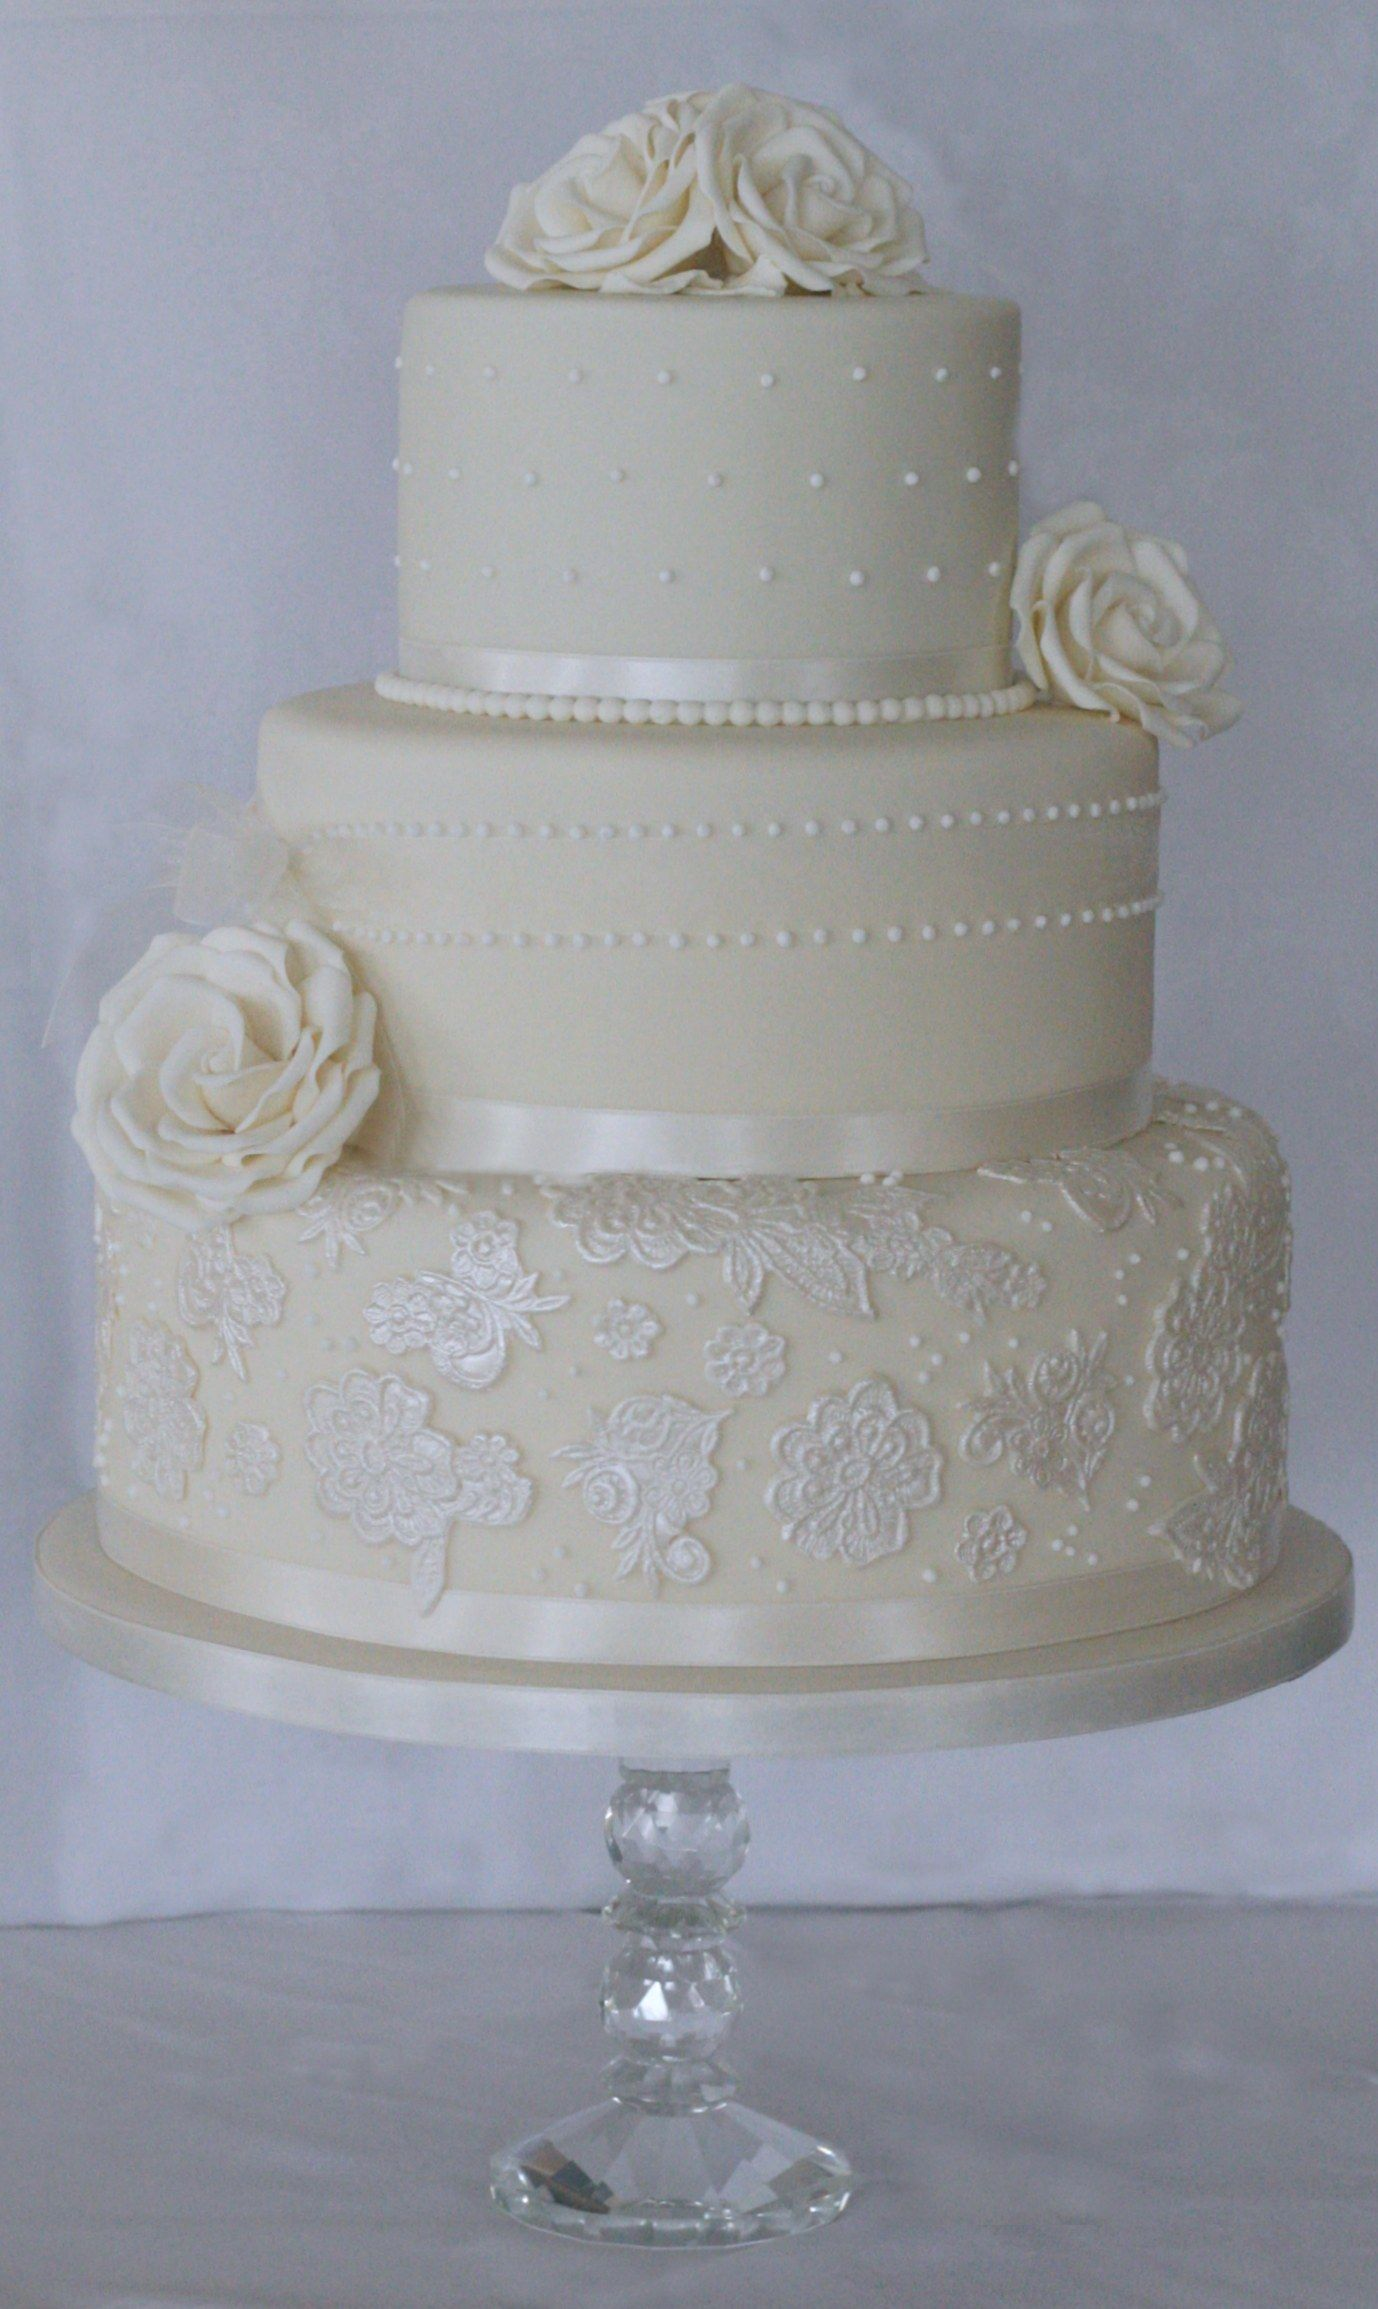 3 Tier Ivory Wedding Cake Finished With Beautiful Handcrafted Sugar Roses,  Royal Iced Swiss Dots And Lustred Sugar Lace To Finish The Look .